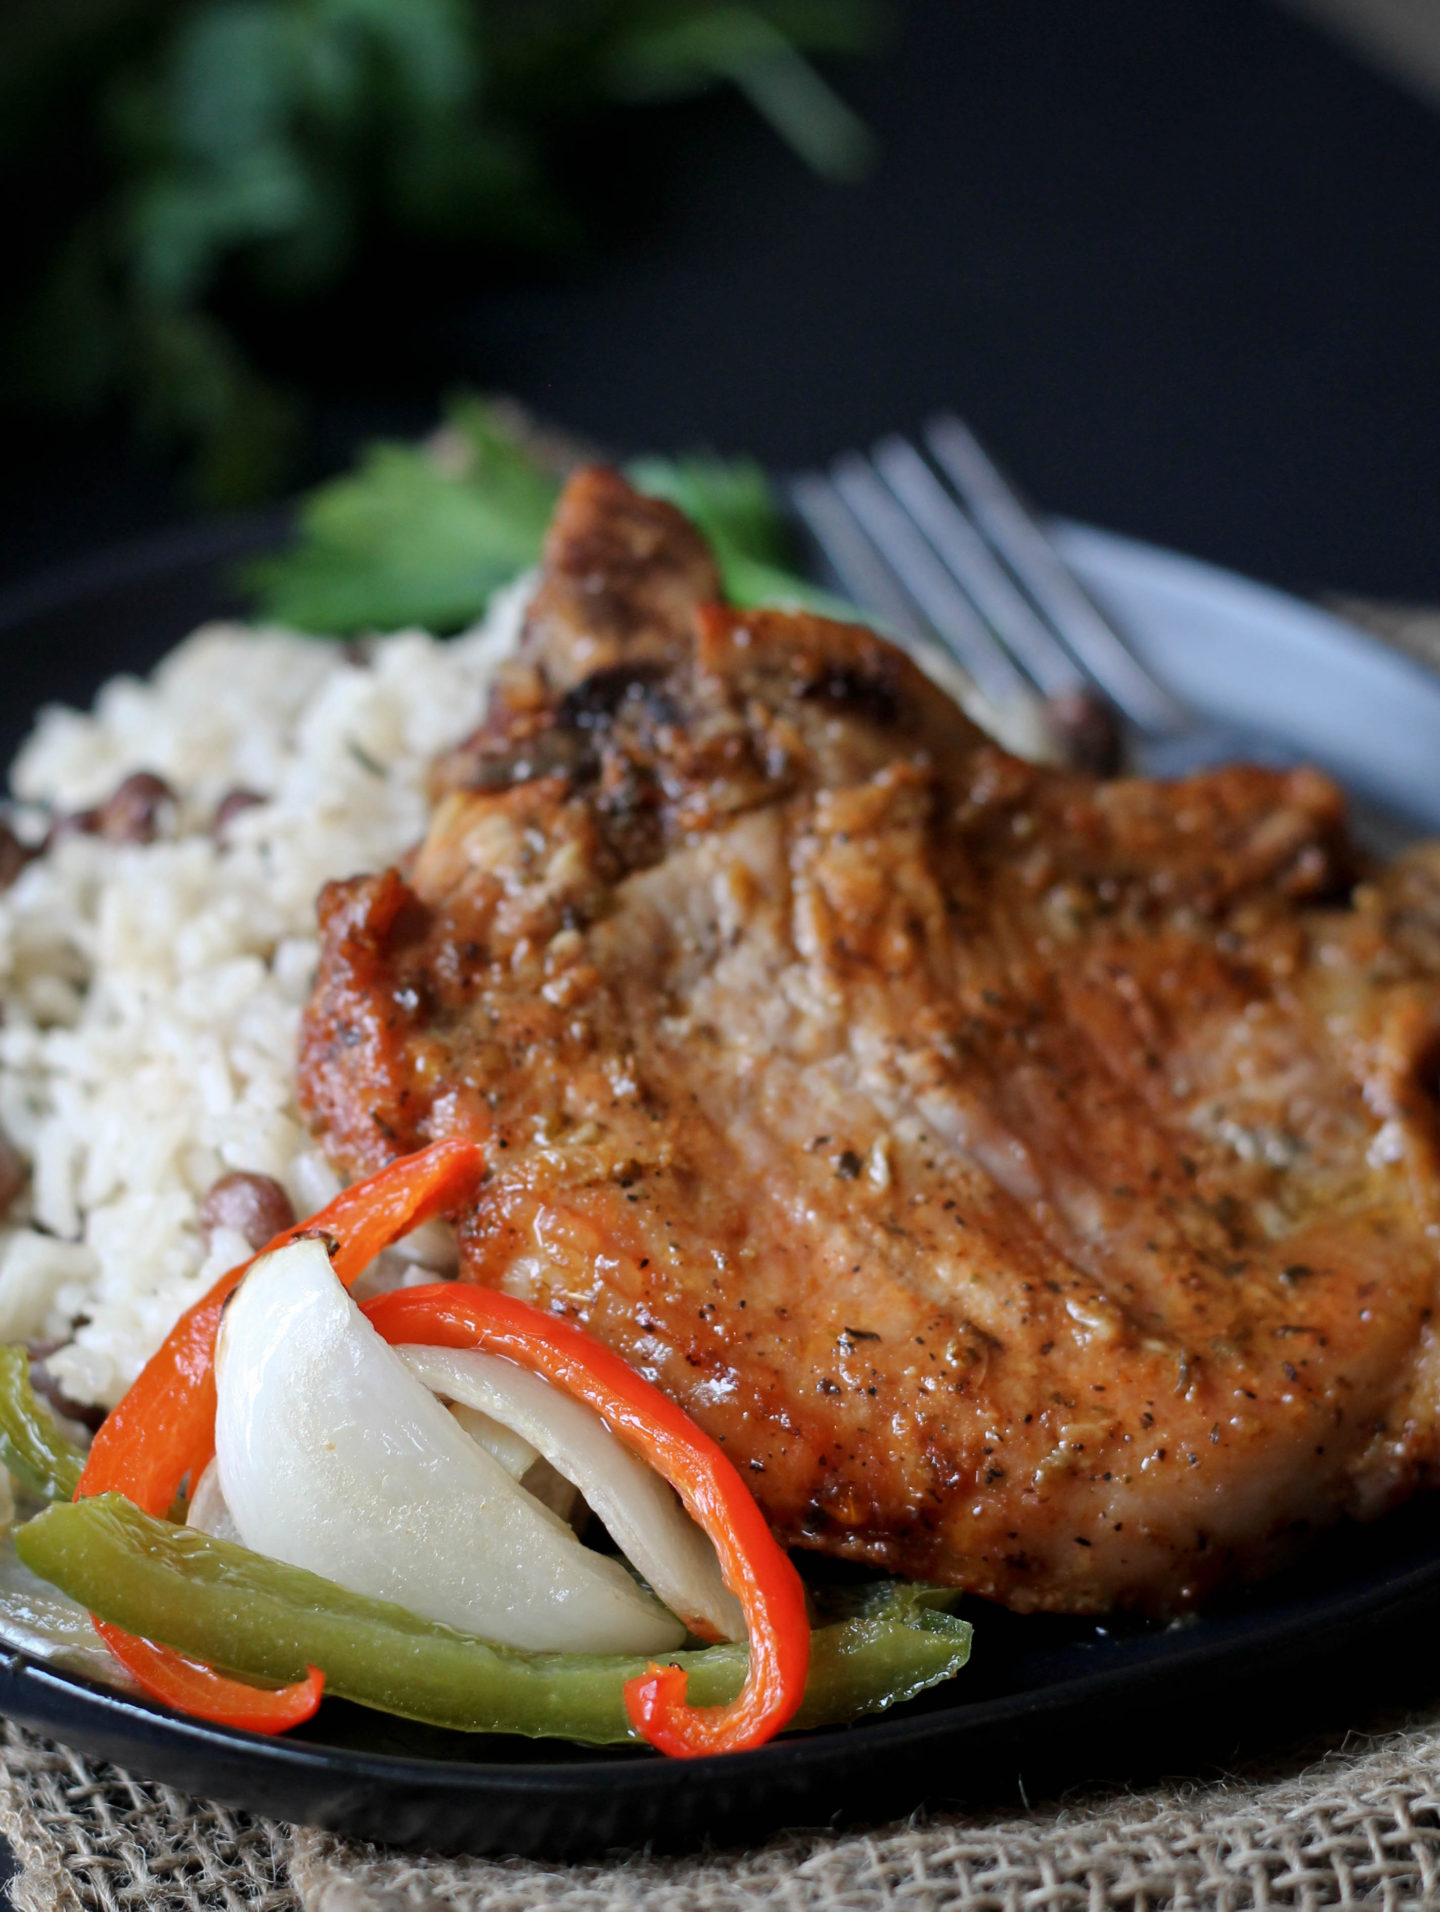 How to make juicy, tender and delicious Baked Pork Chops